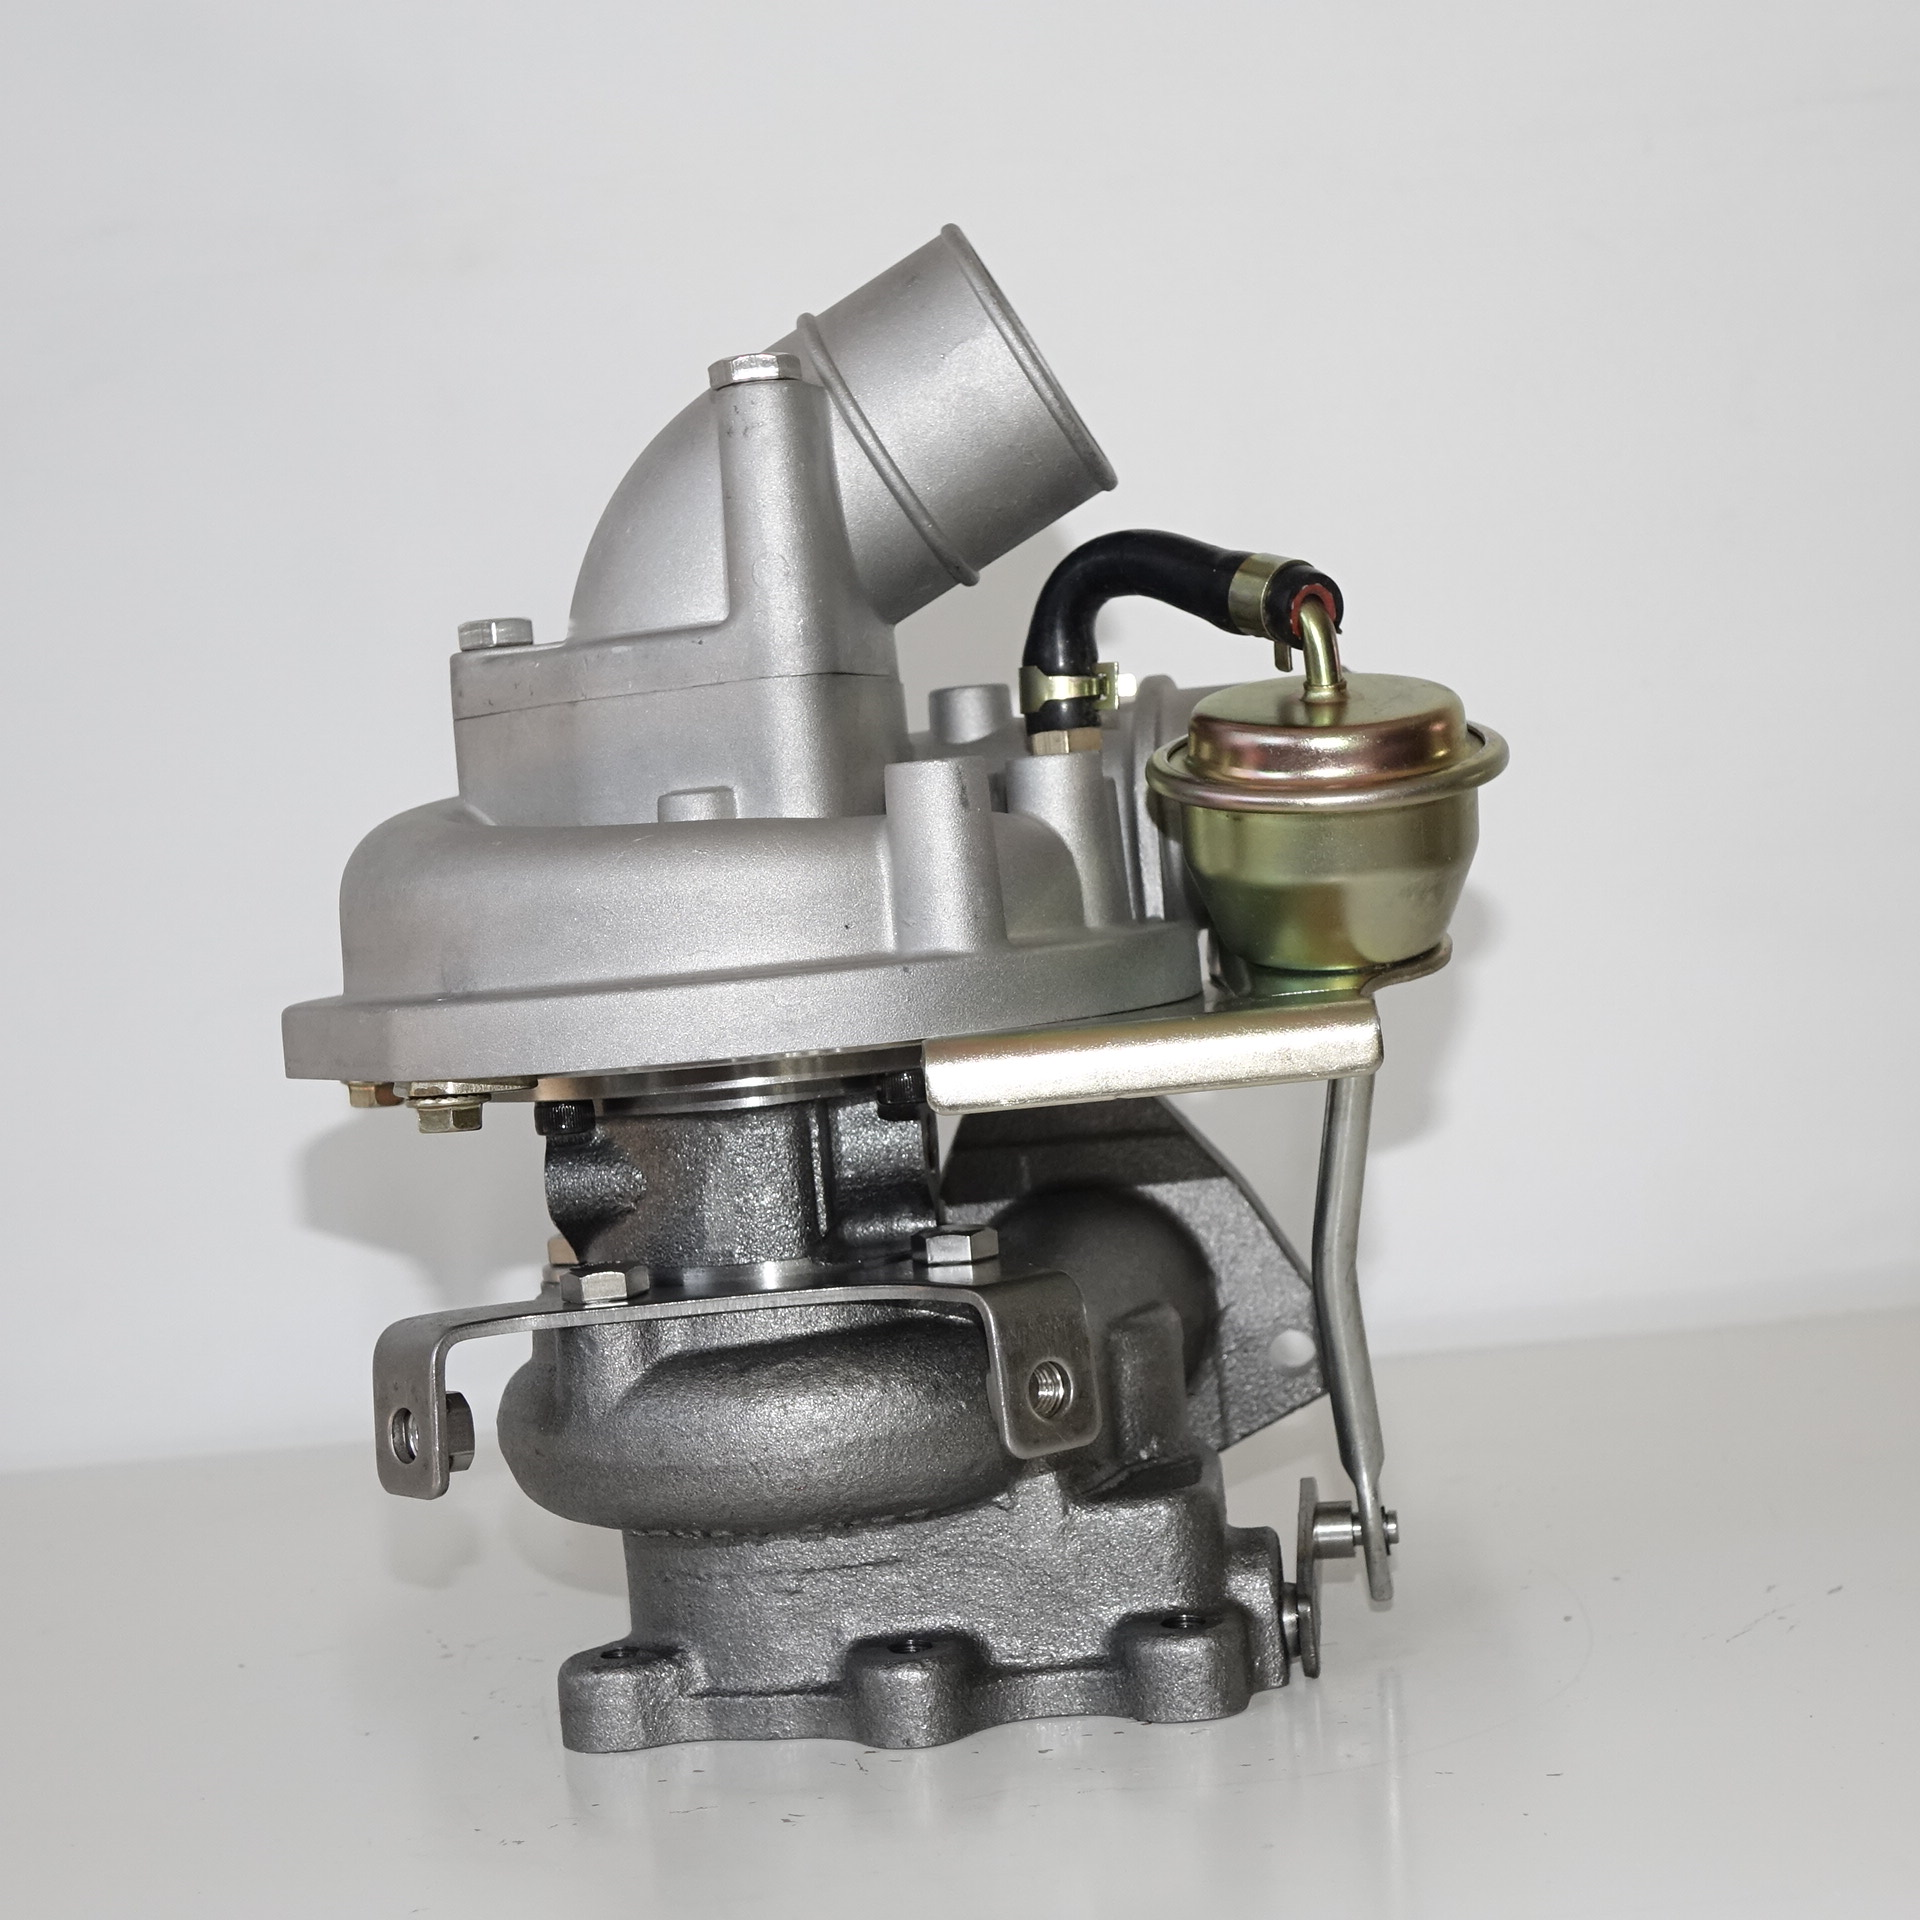 Turbine Used In Turbocharger: Turbochargers Suitable For Nissan Navara D22 ZD30 3.0L